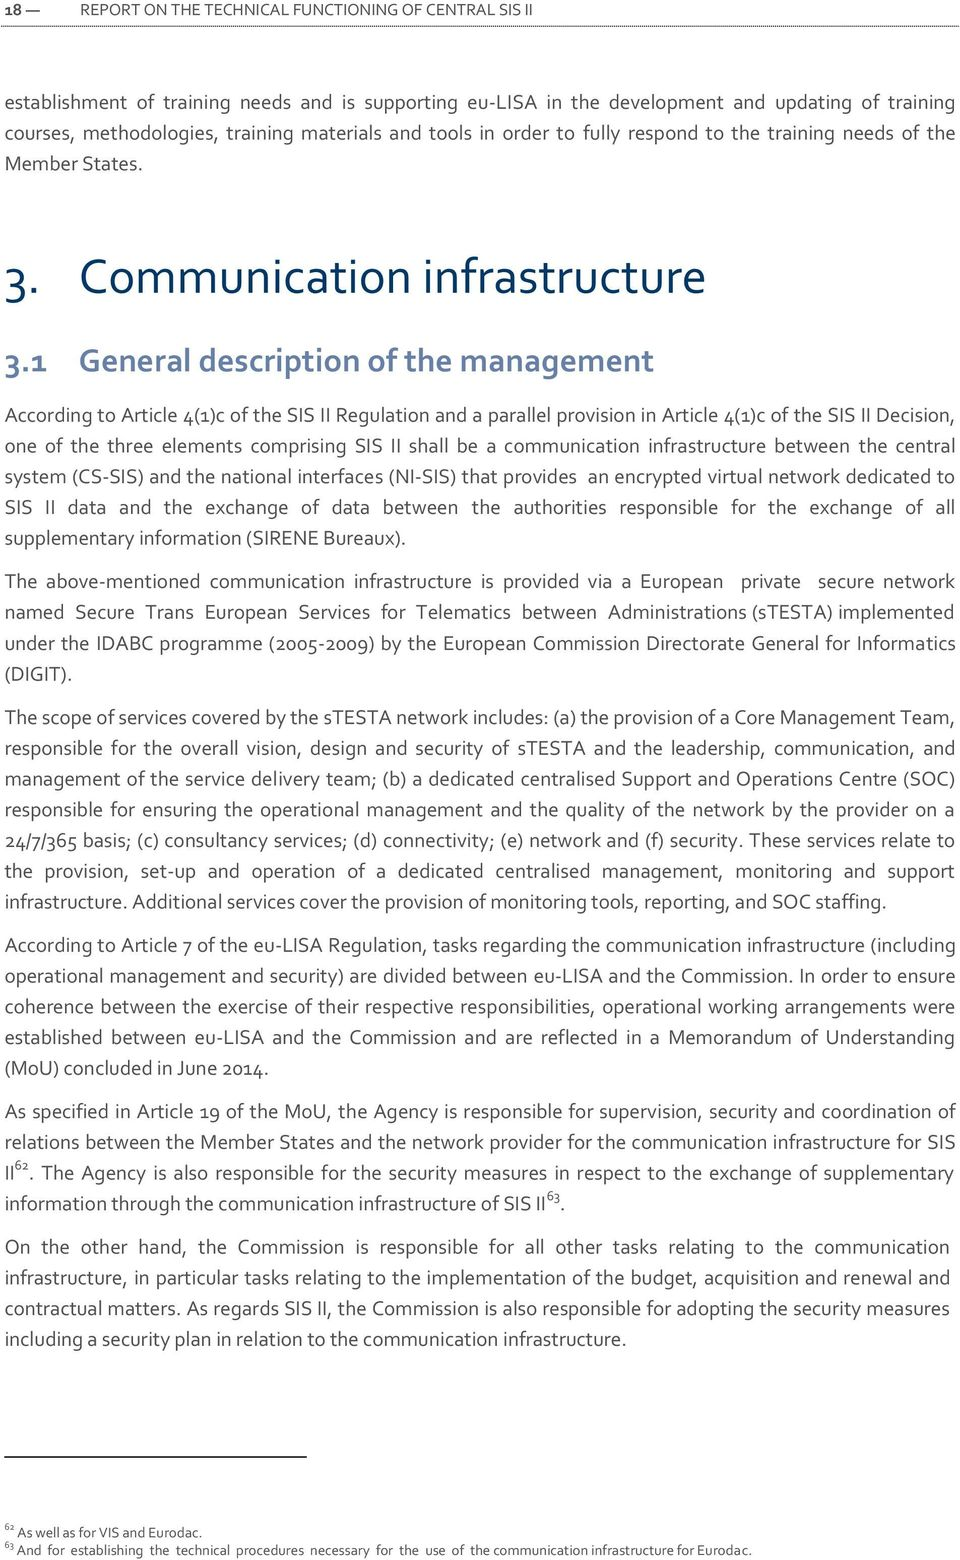 1 General description of the management According to Article 4(1)c of the SIS II Regulation and a parallel provision in Article 4(1)c of the SIS II Decision, one of the three elements comprising SIS